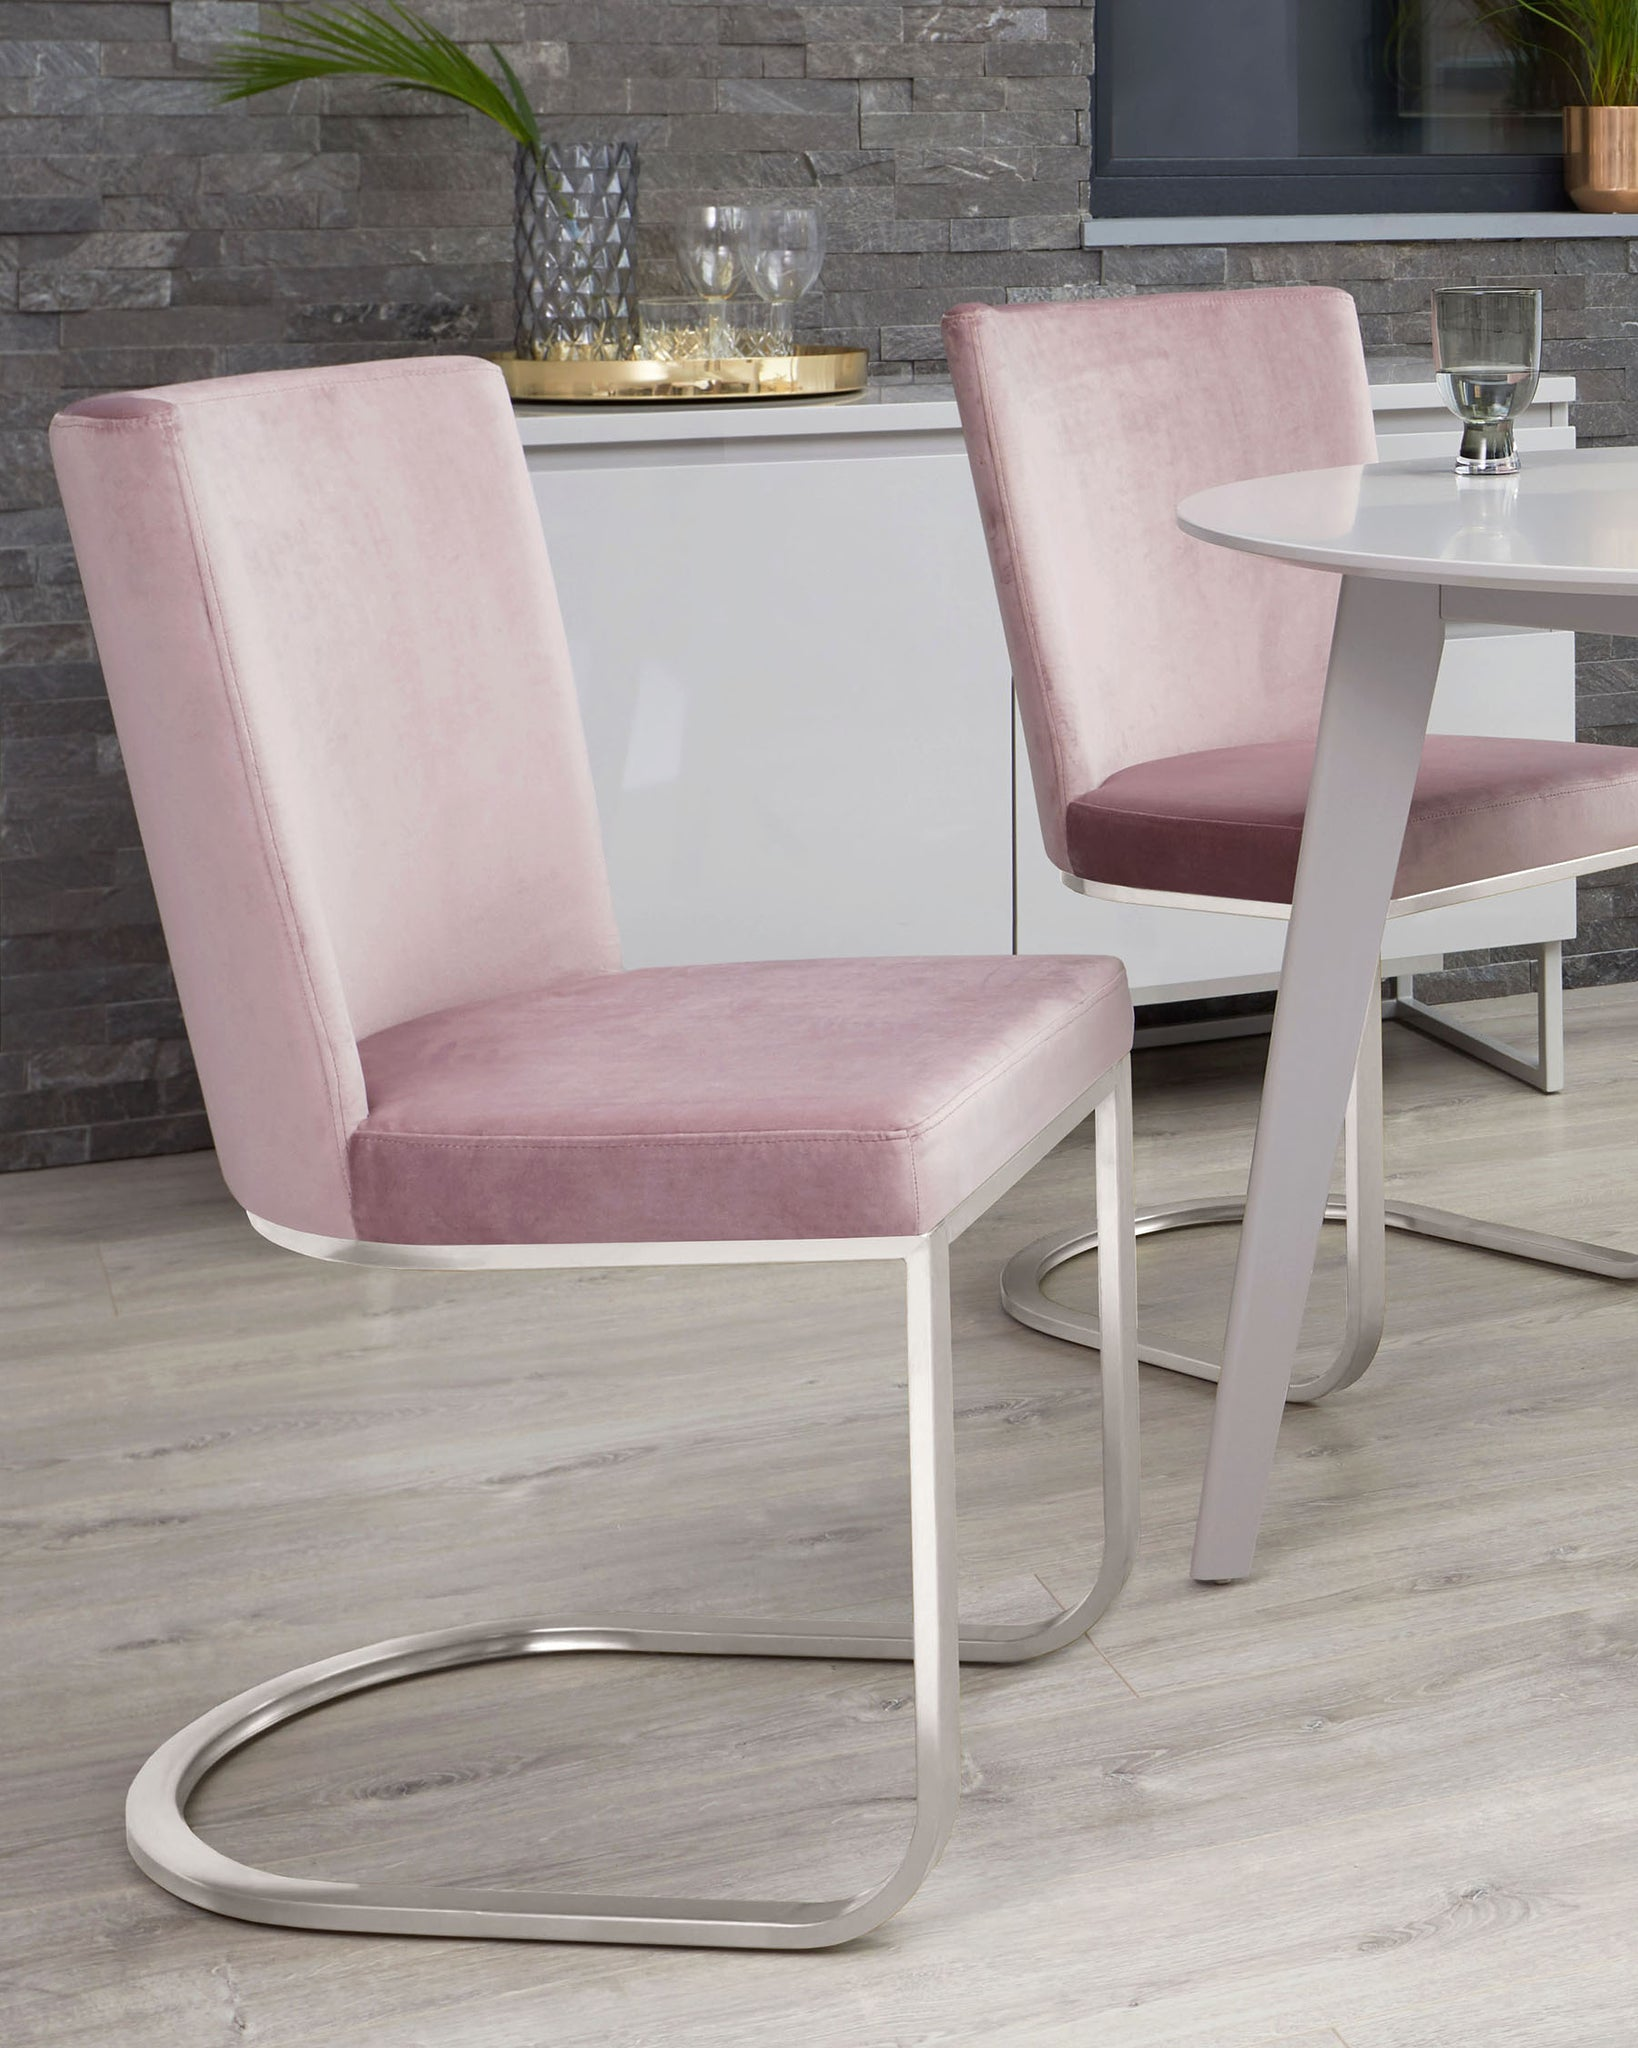 Form Blush Pink Velvet And Brushed Steel Cantilever Dining Chair - Set Of 2